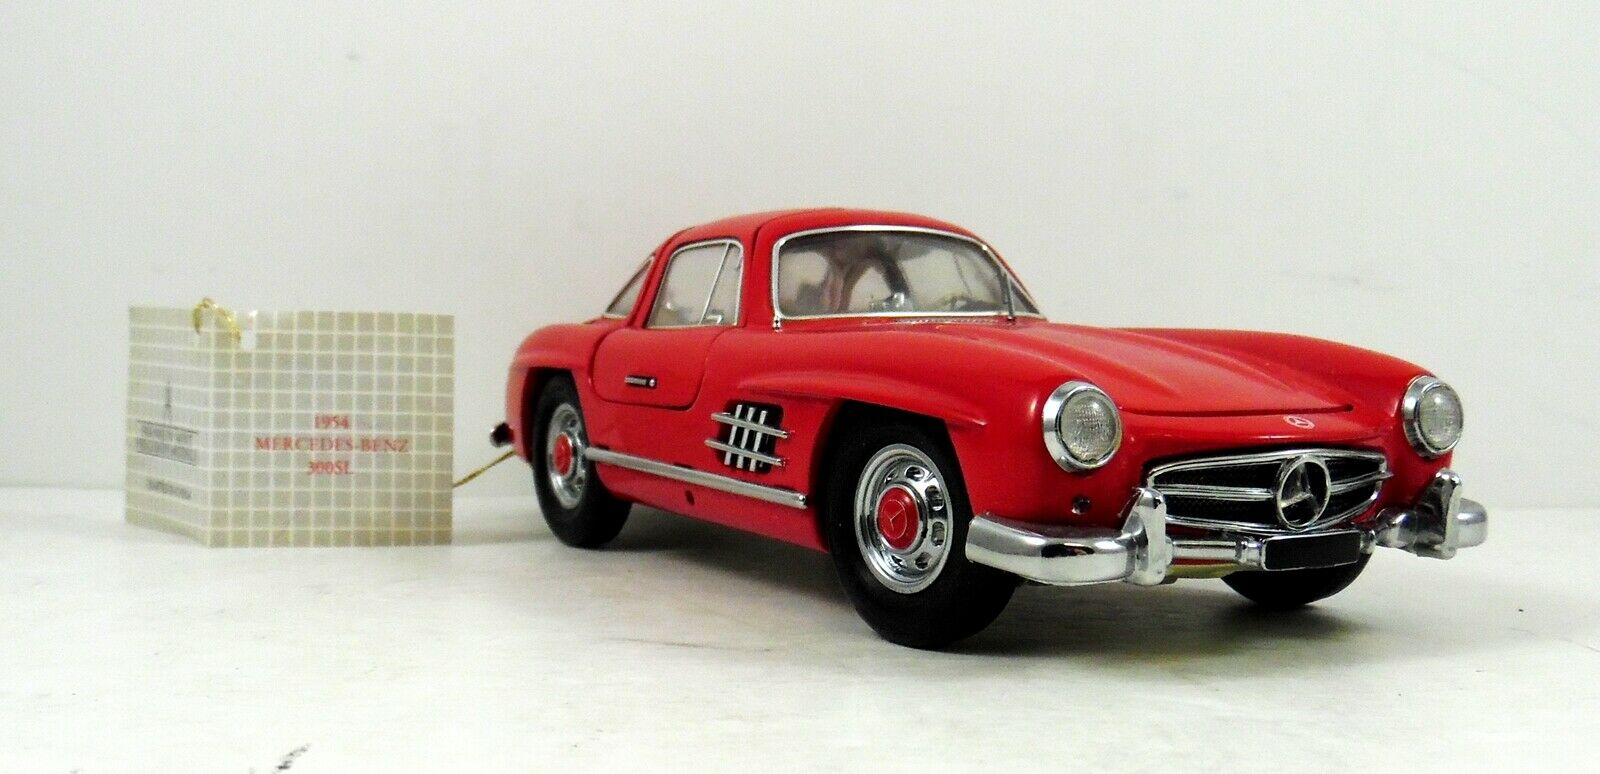 Franklin Mint 1954 Mercedes Benz 300SL Gullwing rot 1 24 Scale